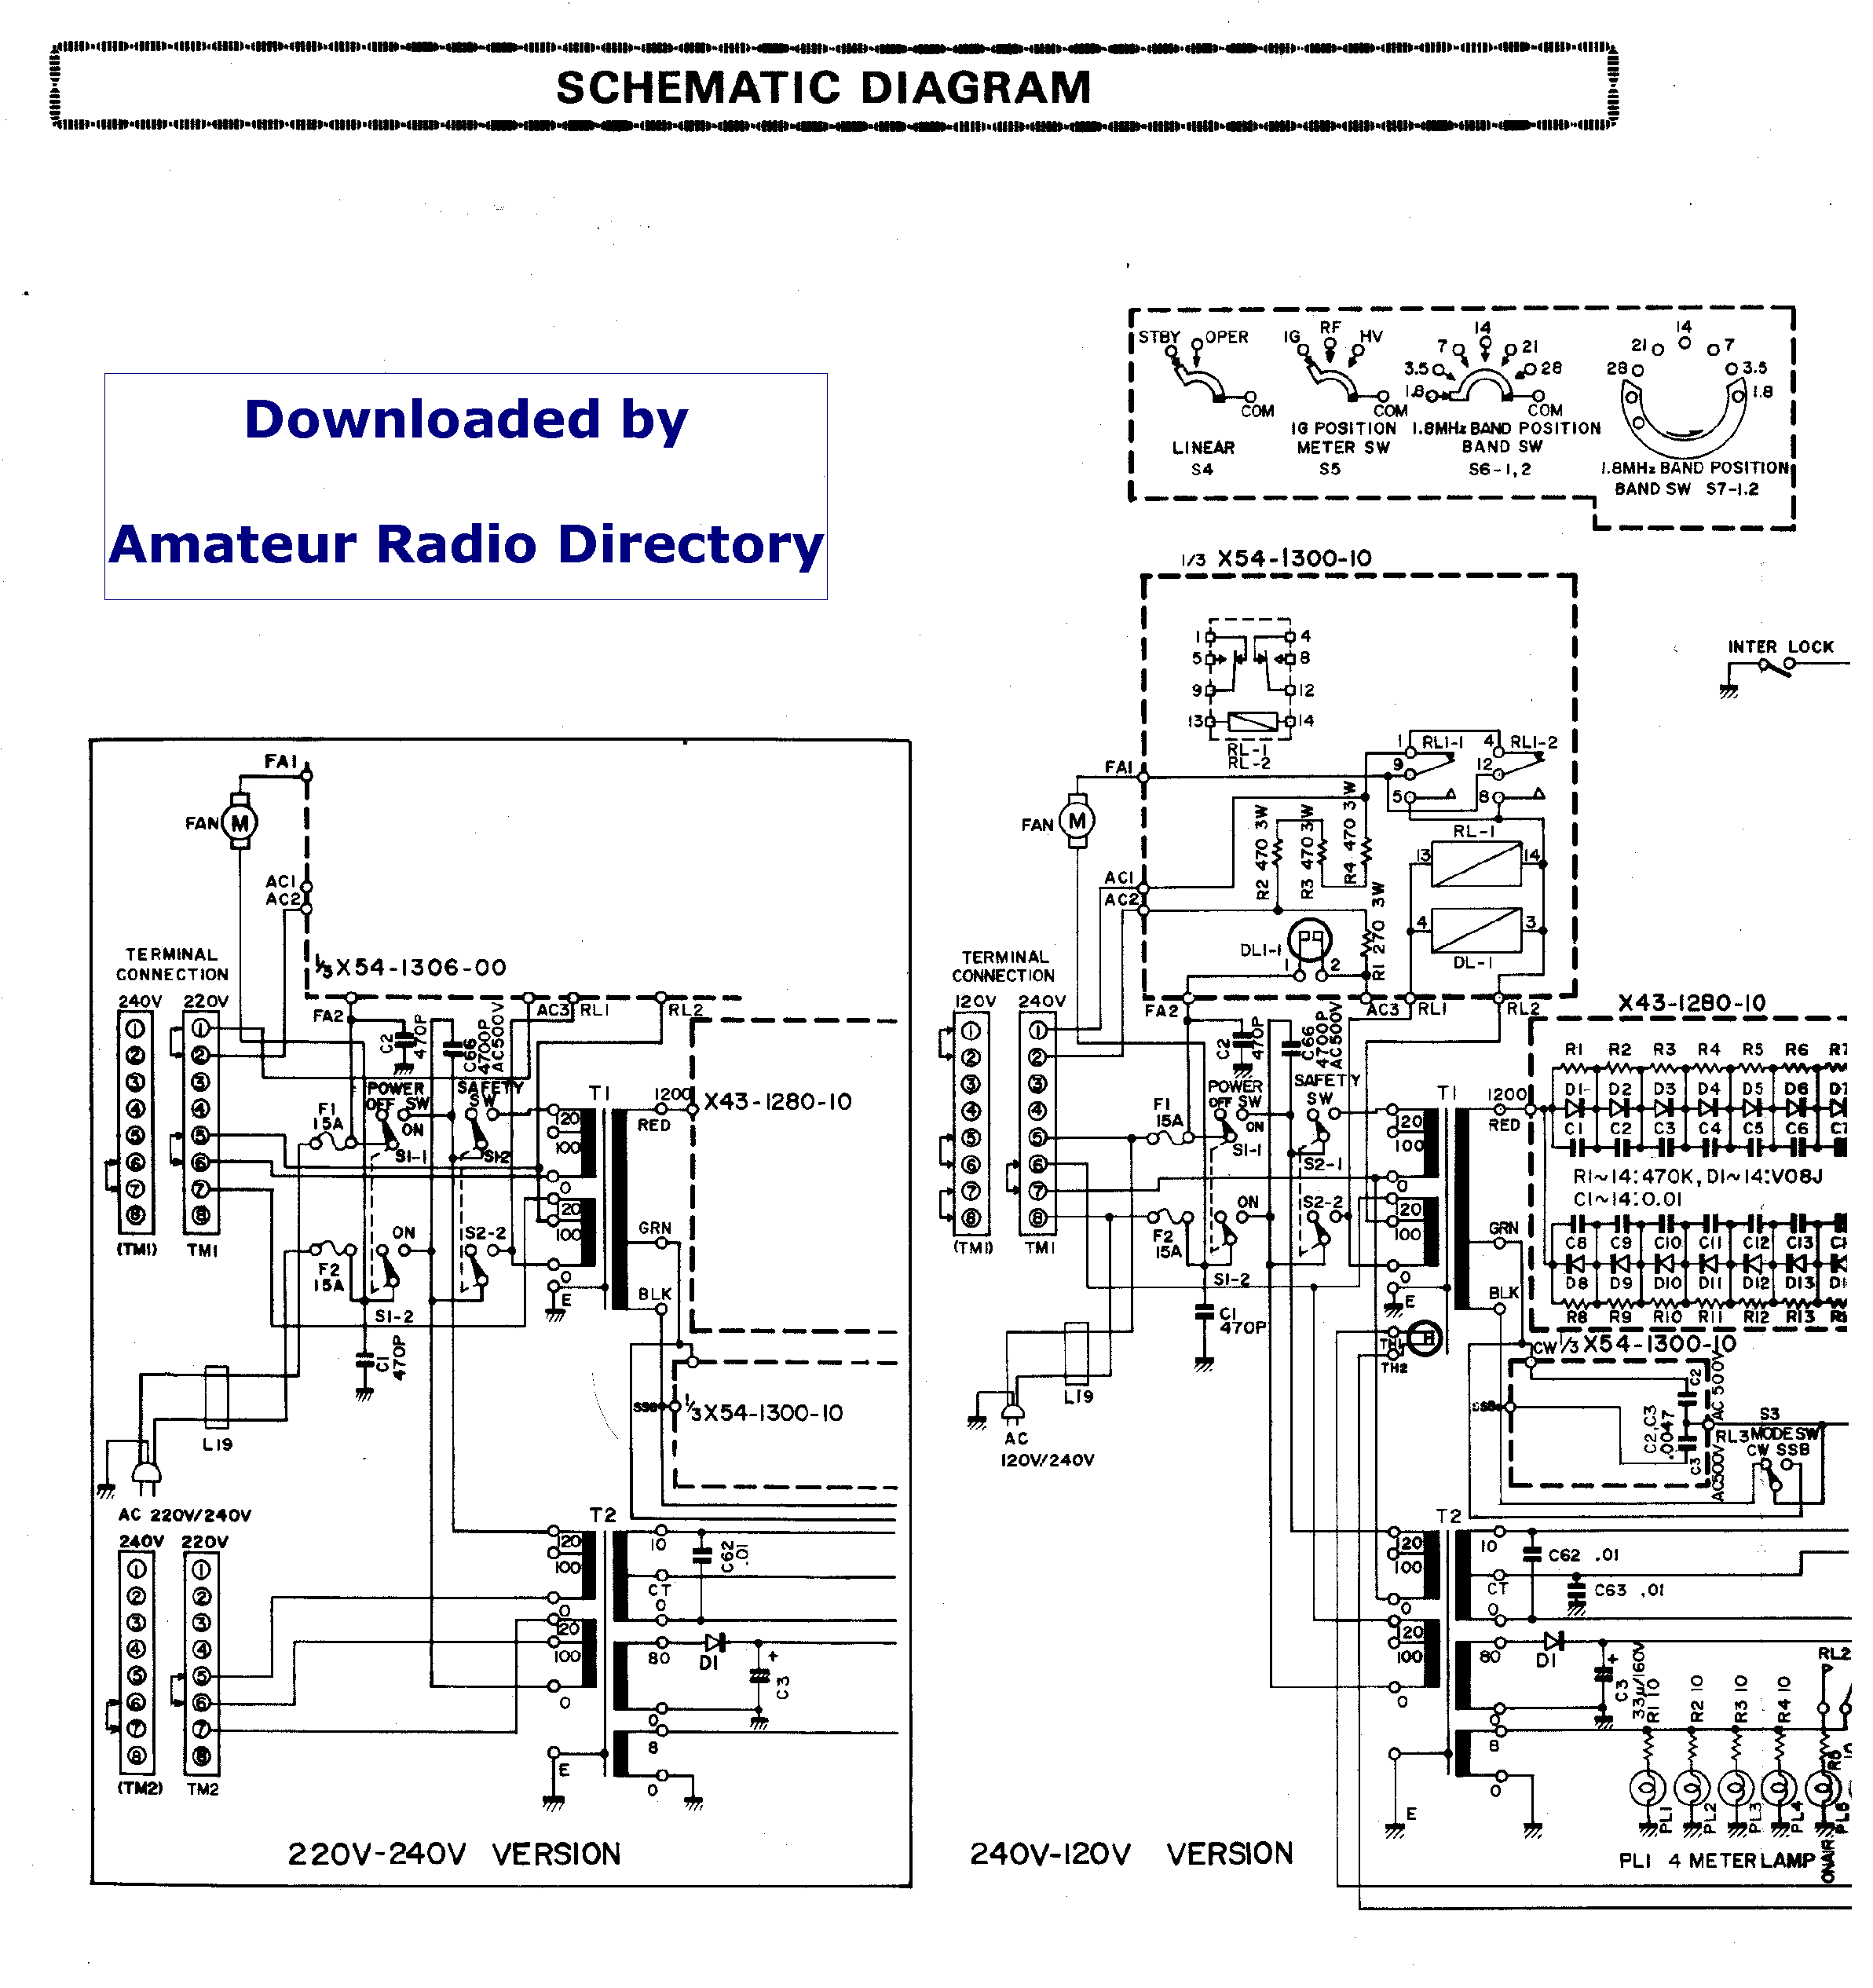 kenwood tl-922 sch service manual download, schematics ... kenwood radio wiring back kenwood radio schematic